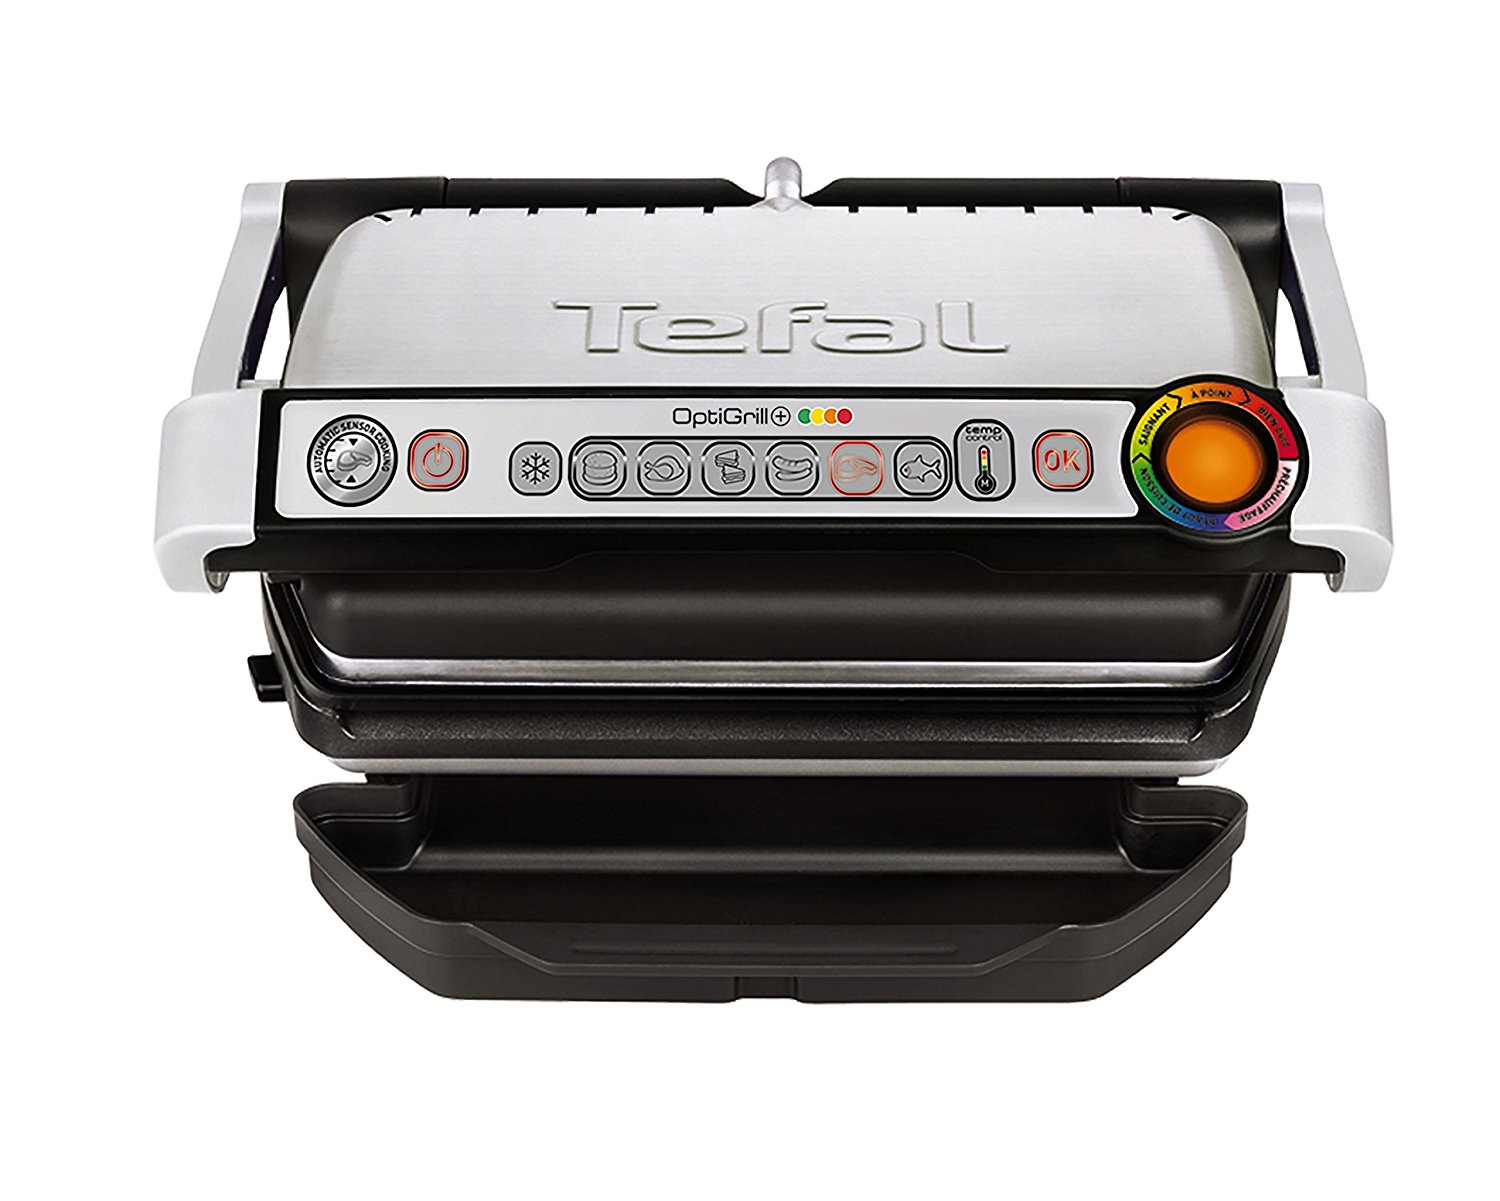 Tefal Optigrill amazon